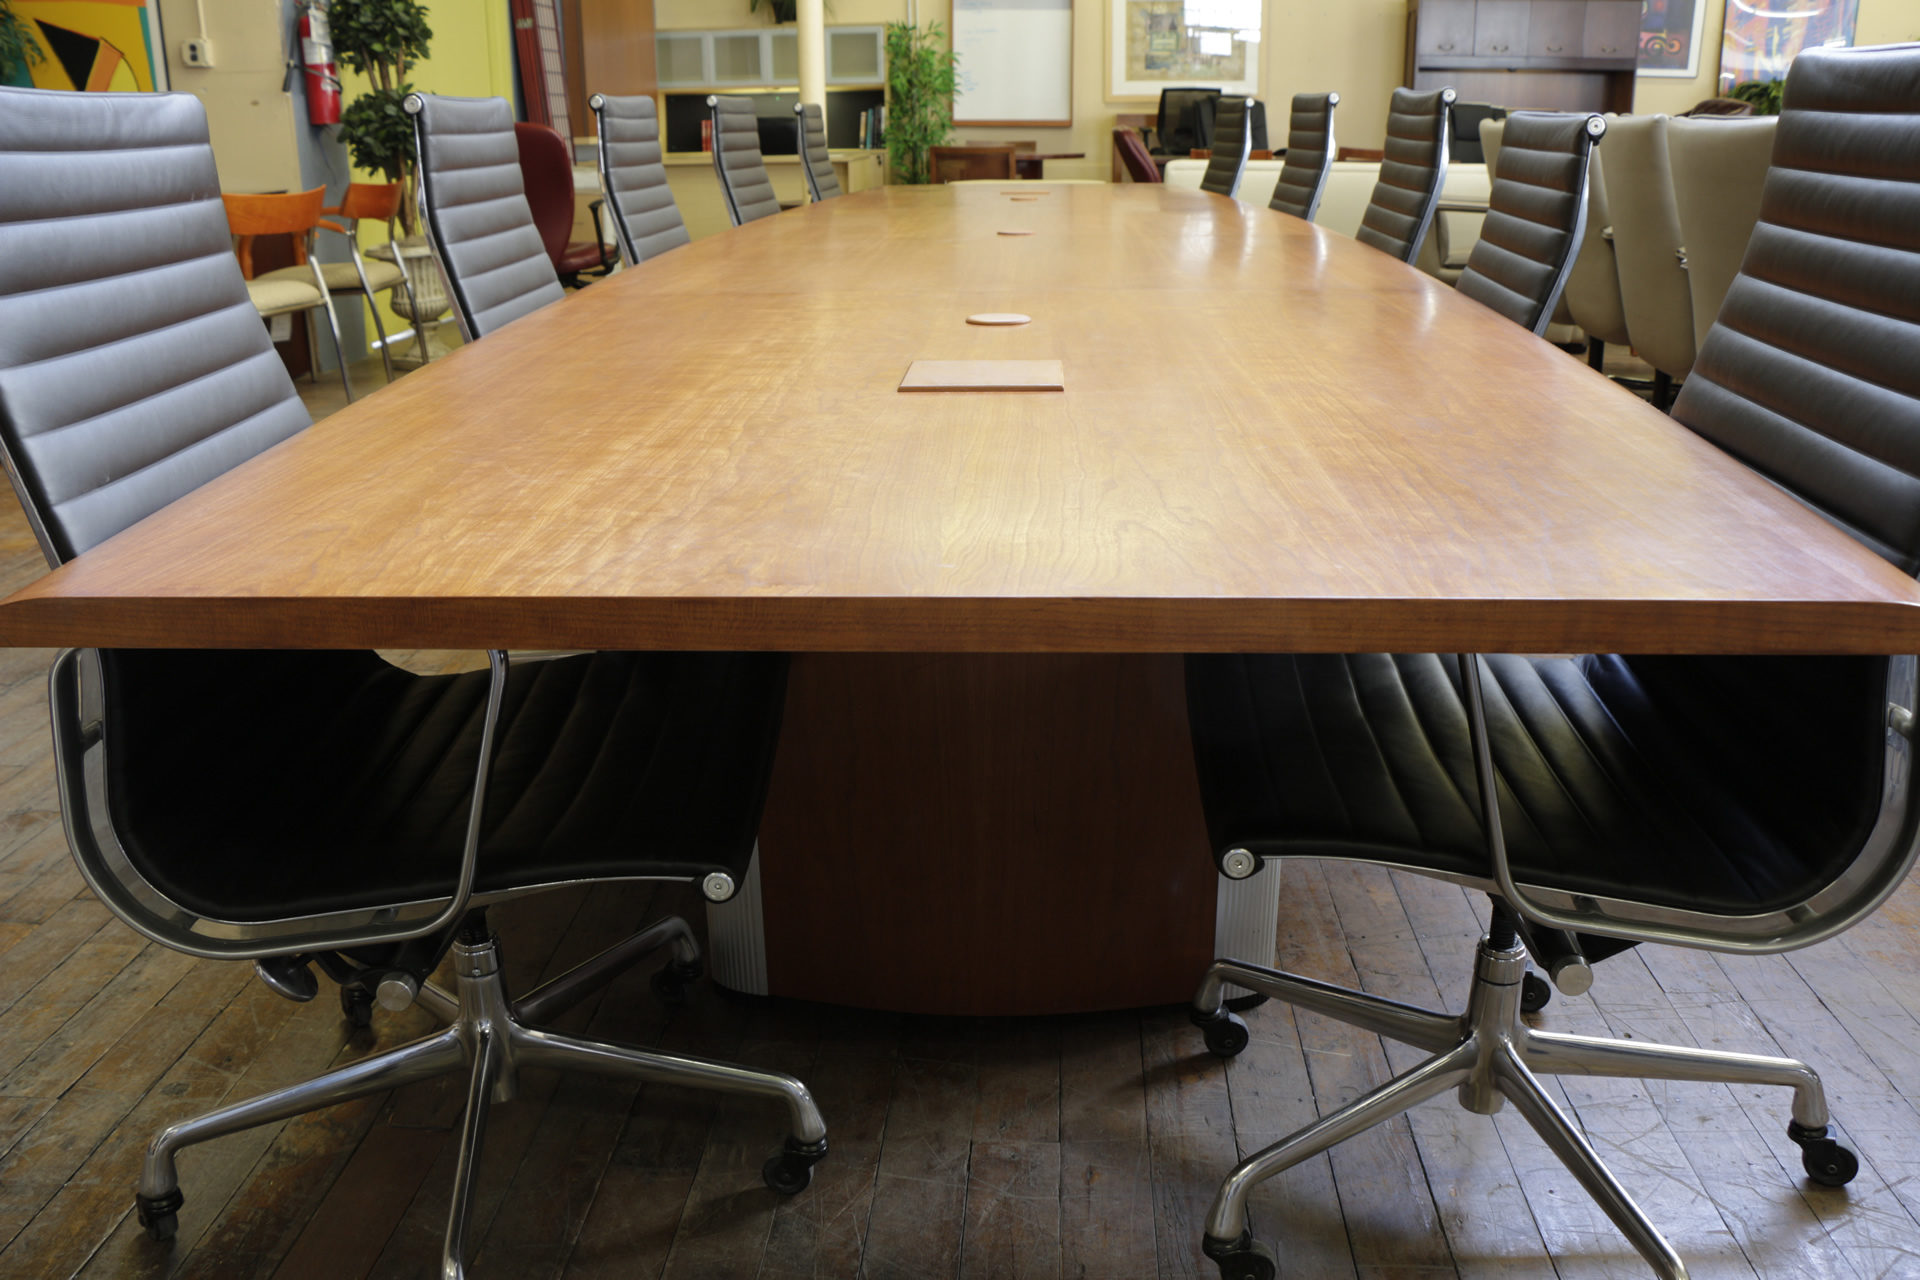 peartreeofficefurniture_peartreeofficefurniture_mg_3848.jpg